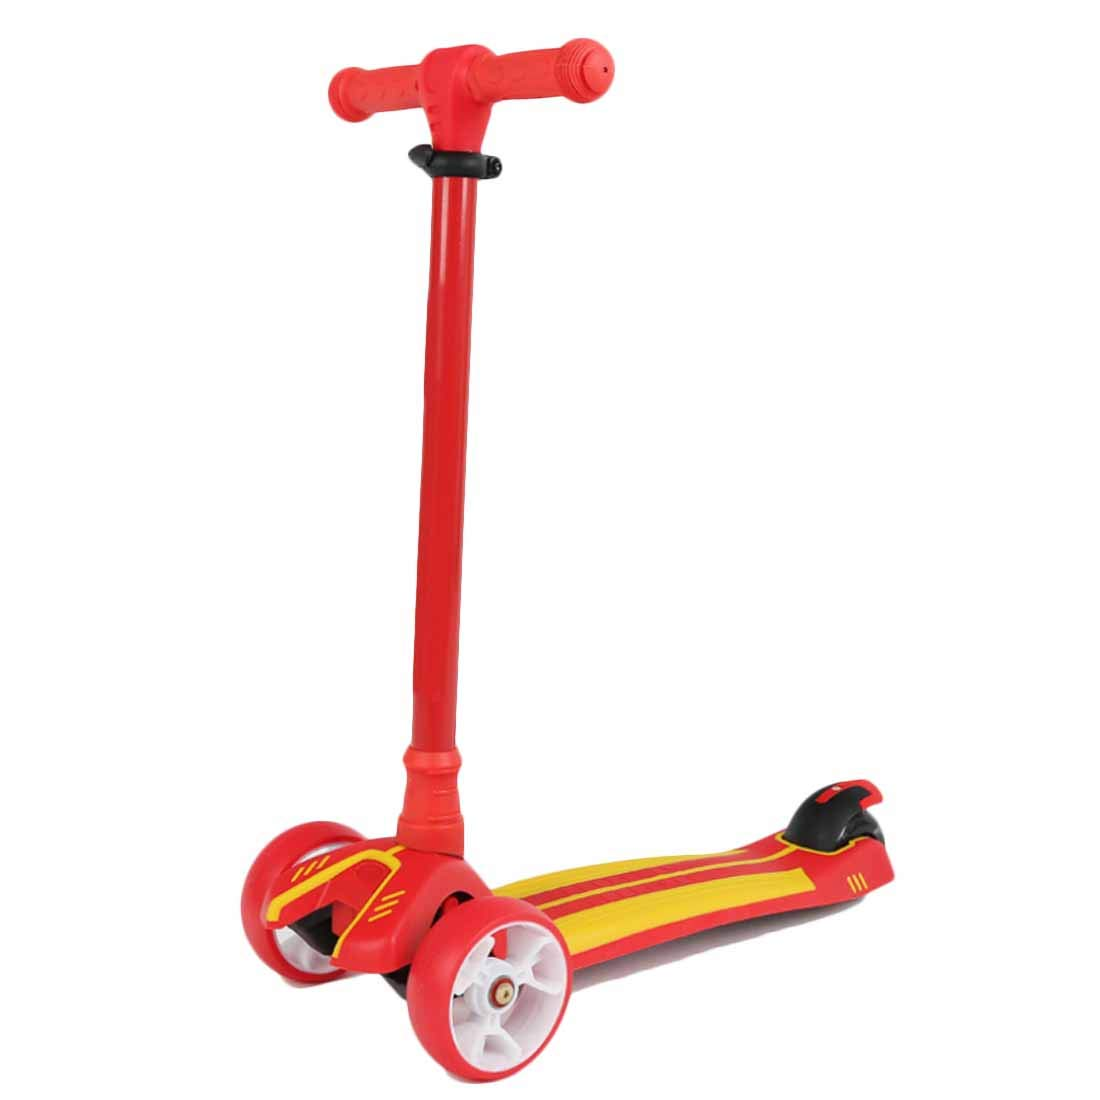 MYMGG Kick Scooter for Kids - 3 Wheels Scooter with Adjustable Height Extra-Wide Deck PU Flashing Wheels,Red